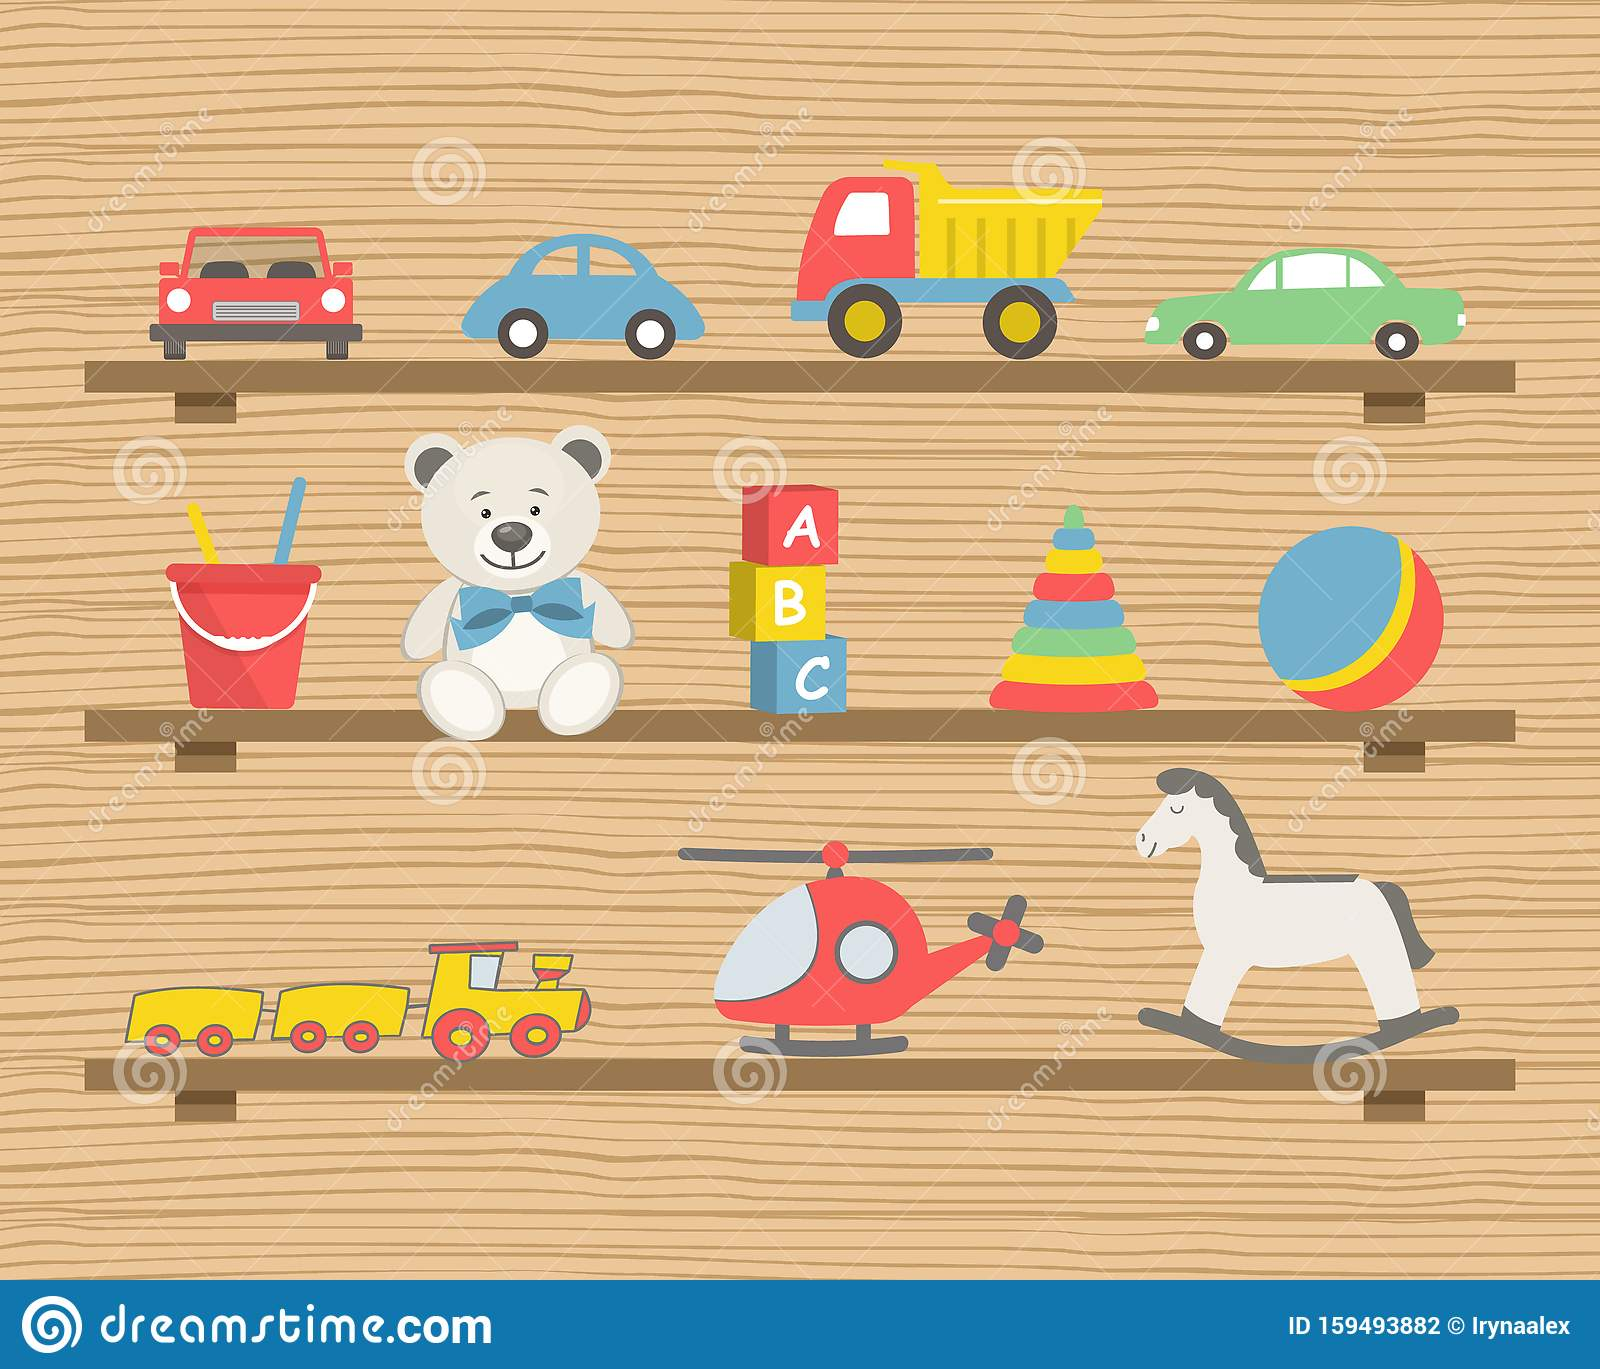 Shelves With Toys There Are Cars A Helicopter Teddy Bear A Rocking Horse And Other Items Stock Vector Illustration Of Gift Cube 159493882